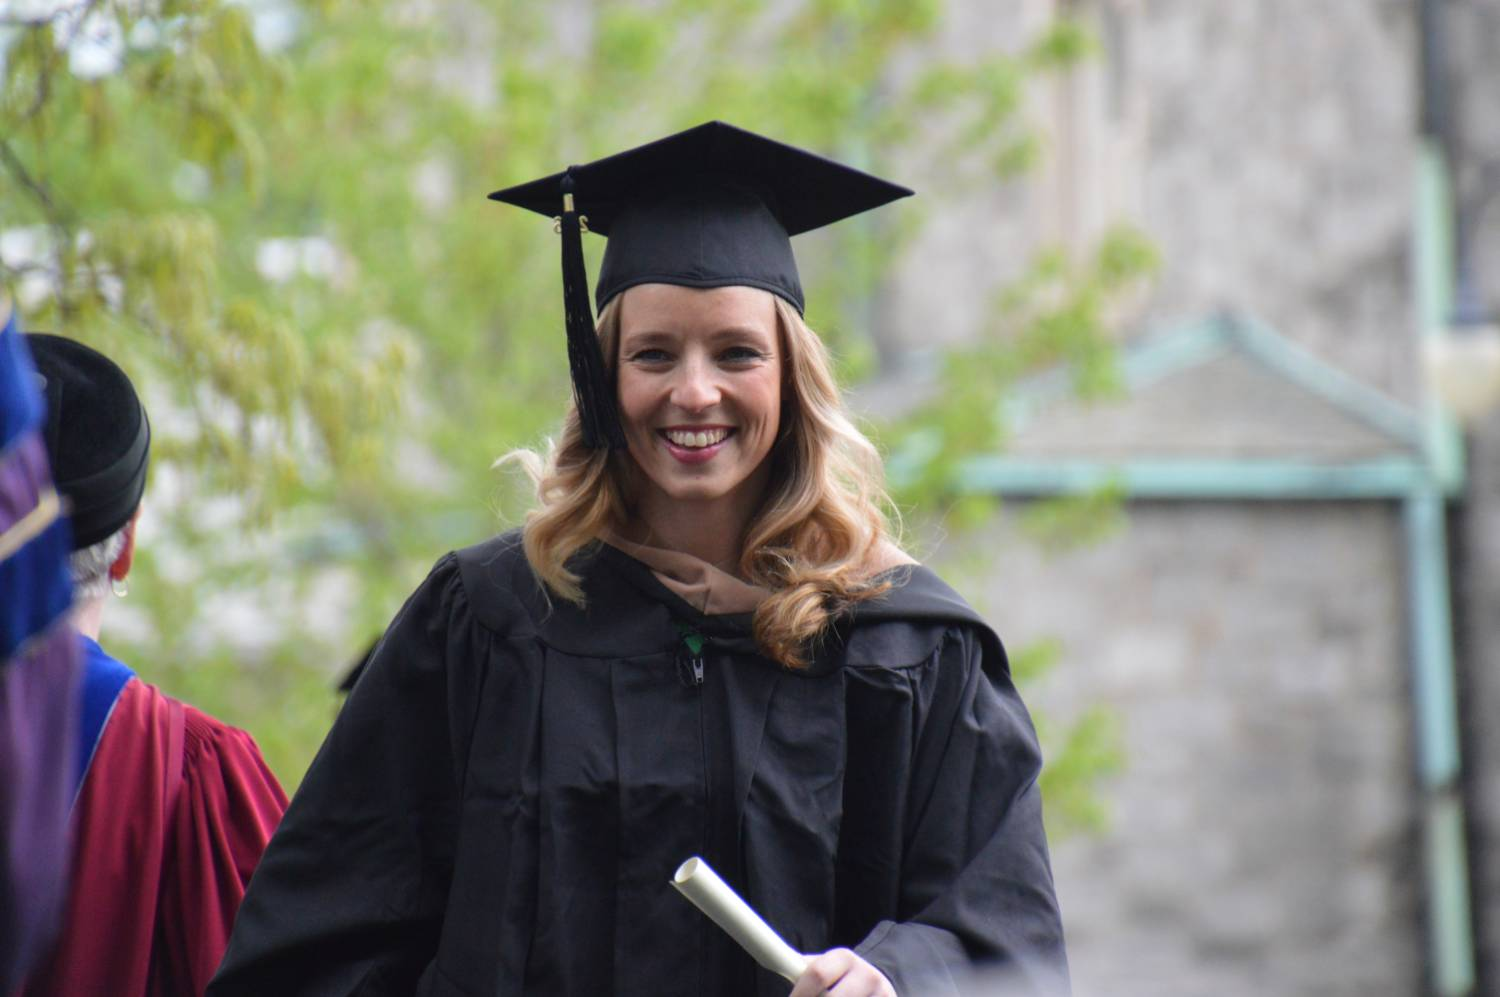 Woman in her thirties accepting a diploma in her cap and gown. She is caucasion with mid-length blonde hair.